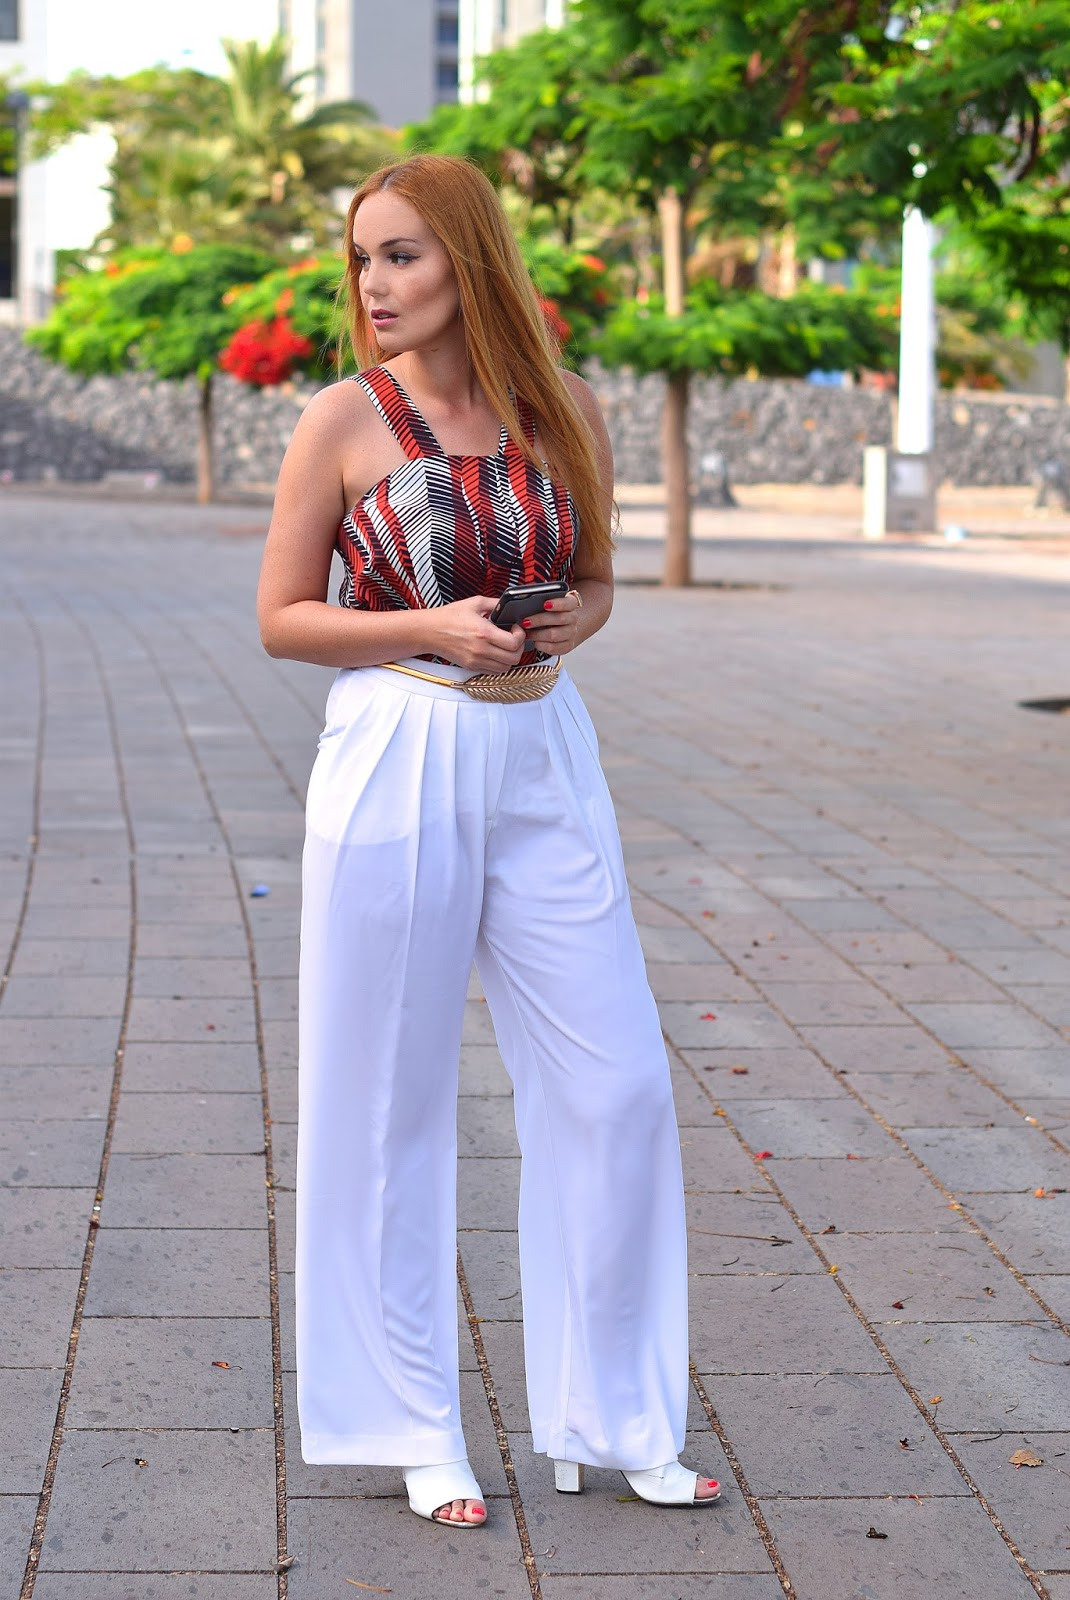 nery hdez, dresslink, parfois, palazzo pants, letrendy, iphone case, guess,